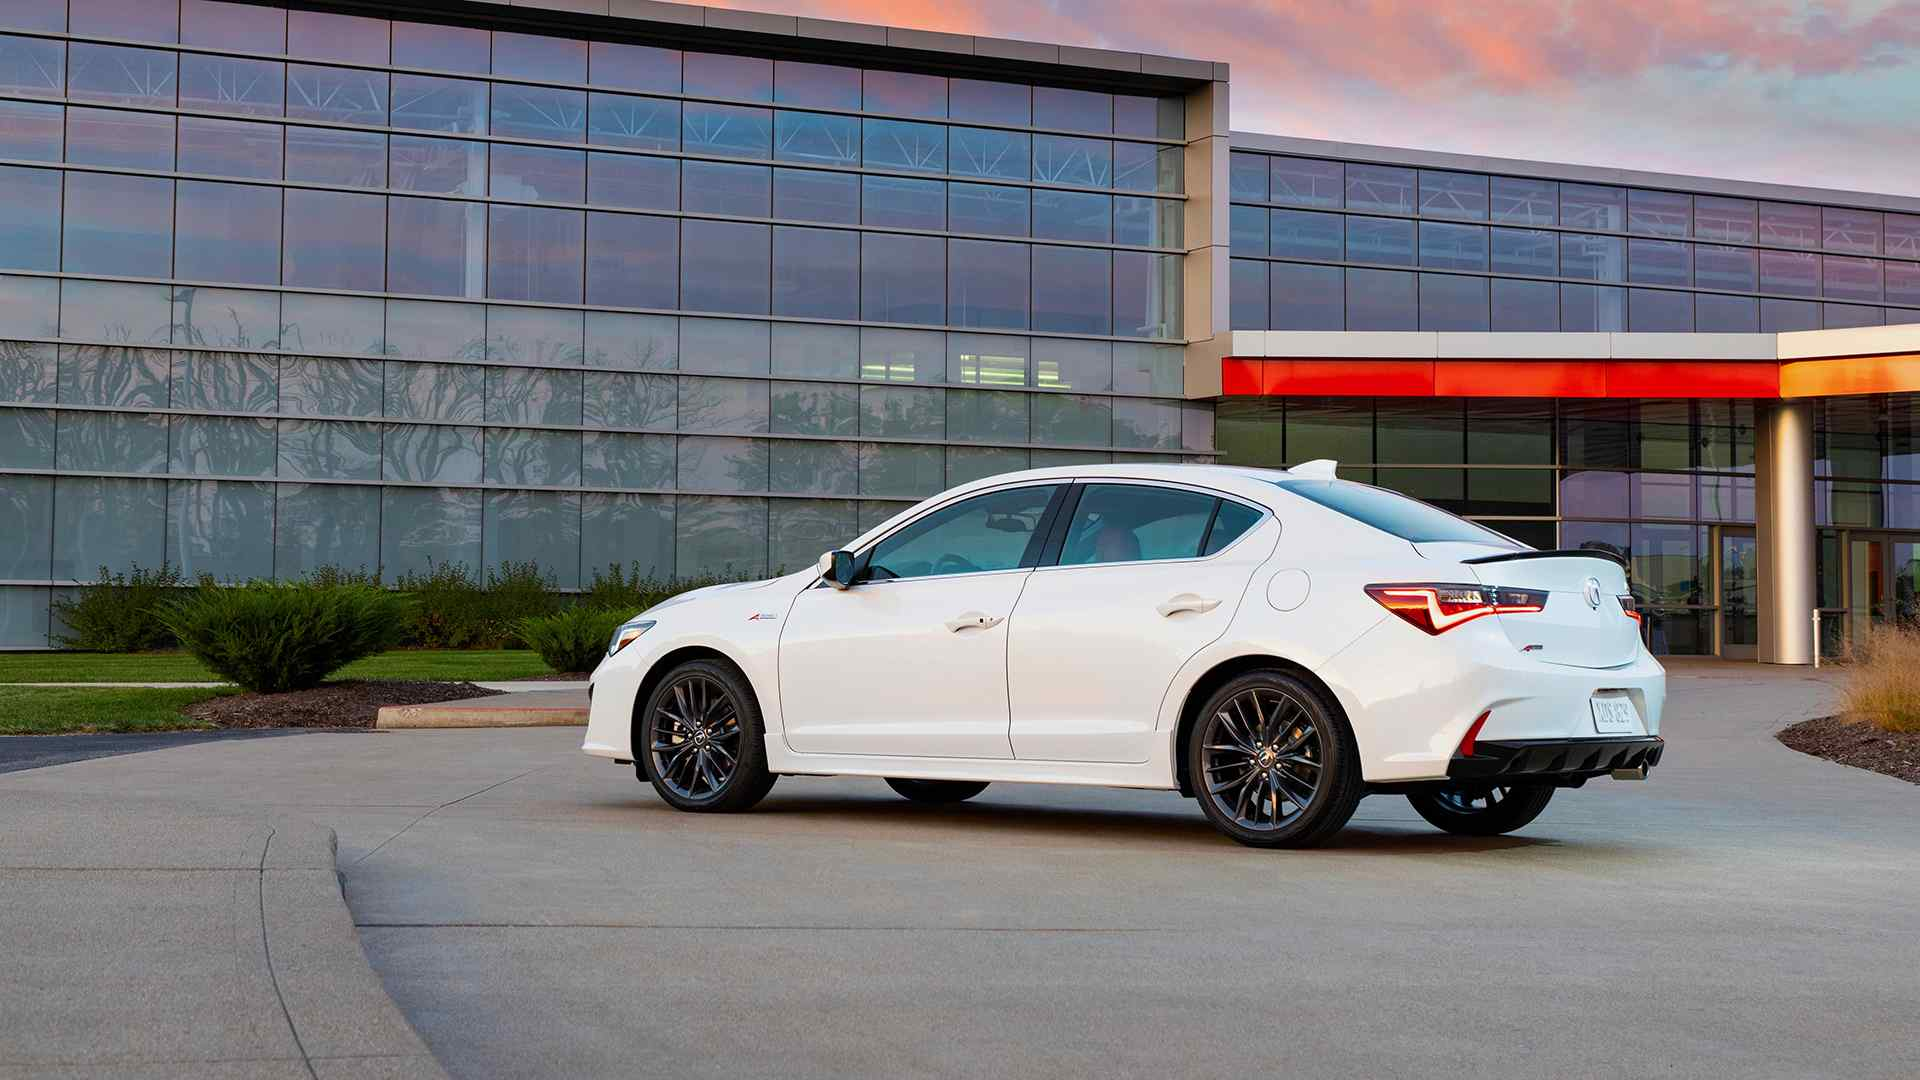 79 All New Best 2019 Acura Packages First Drive Picture with Best 2019 Acura Packages First Drive